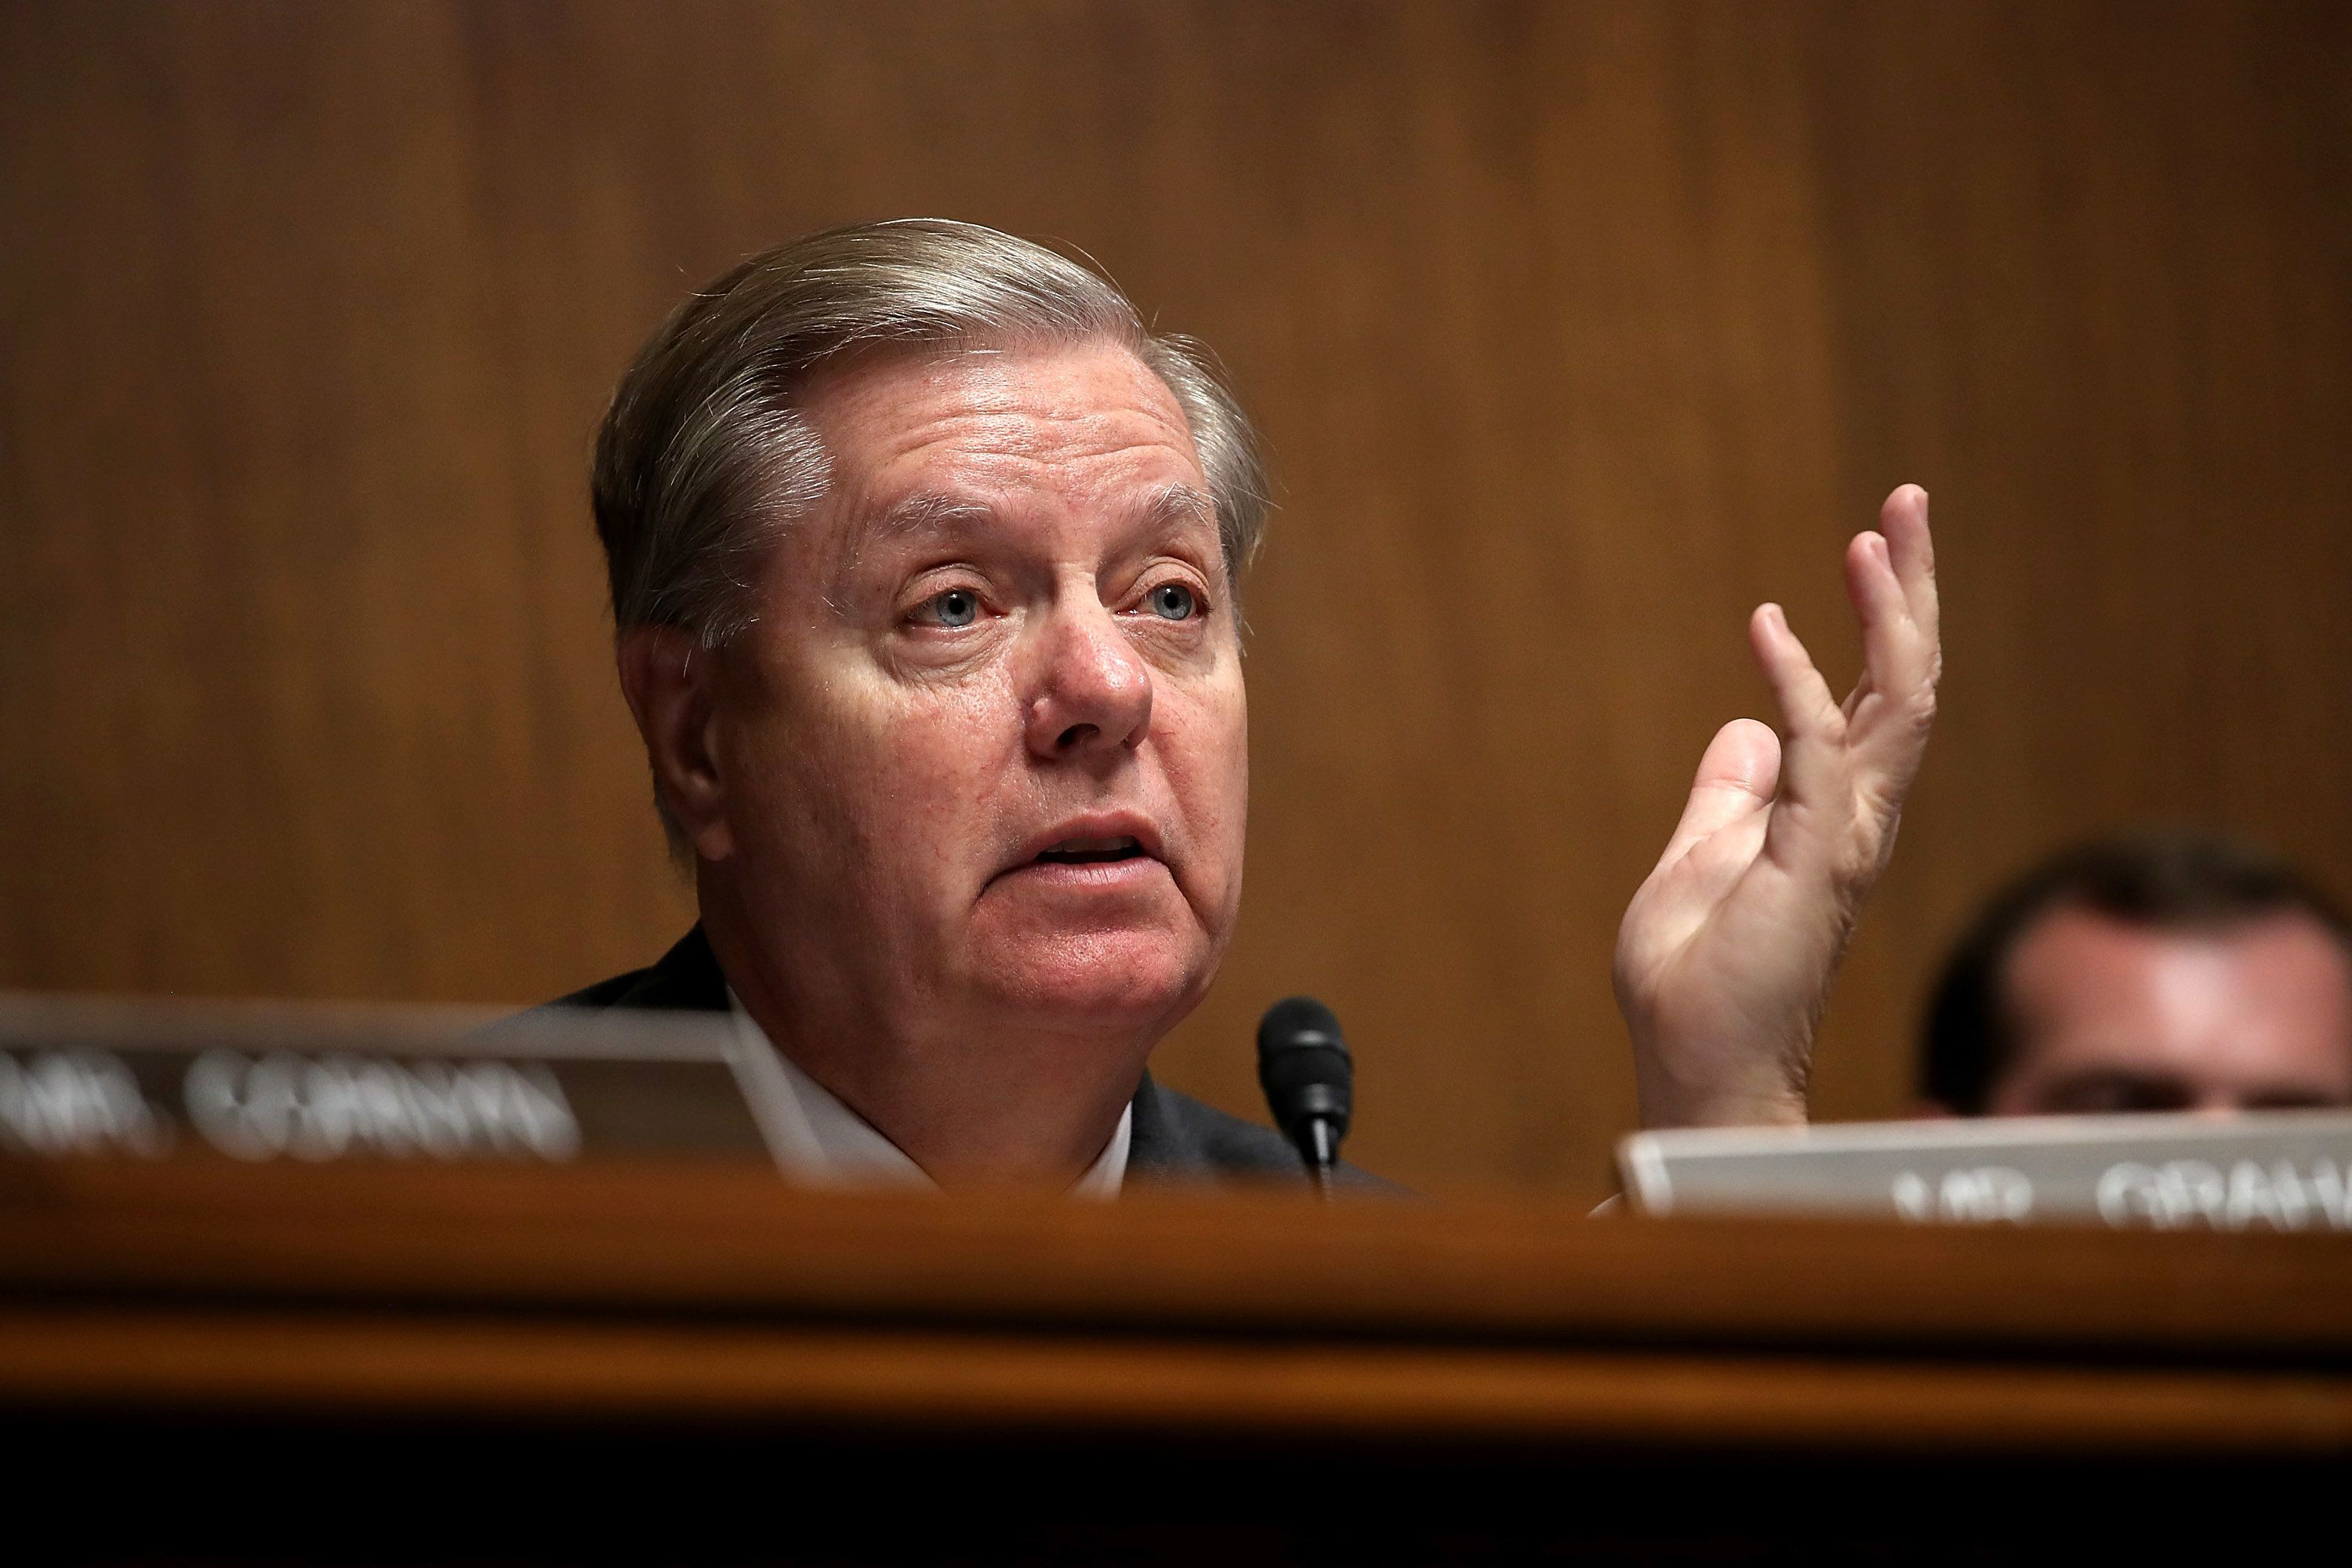 WASHINGTON, DC - JUNE 19:  Sen. Lindsey Graham (R-SC) questions U.S. Citizenship and Immigration Services Director L. Francis Cissna during a Senate Judiciary Committee hearing June 19, 2018 in Washington, DC. The committee heard testimony on recent immigration issues relating to border security and the EB-5 Investor Visa Program.  (Photo by Win McNamee/Getty Images)